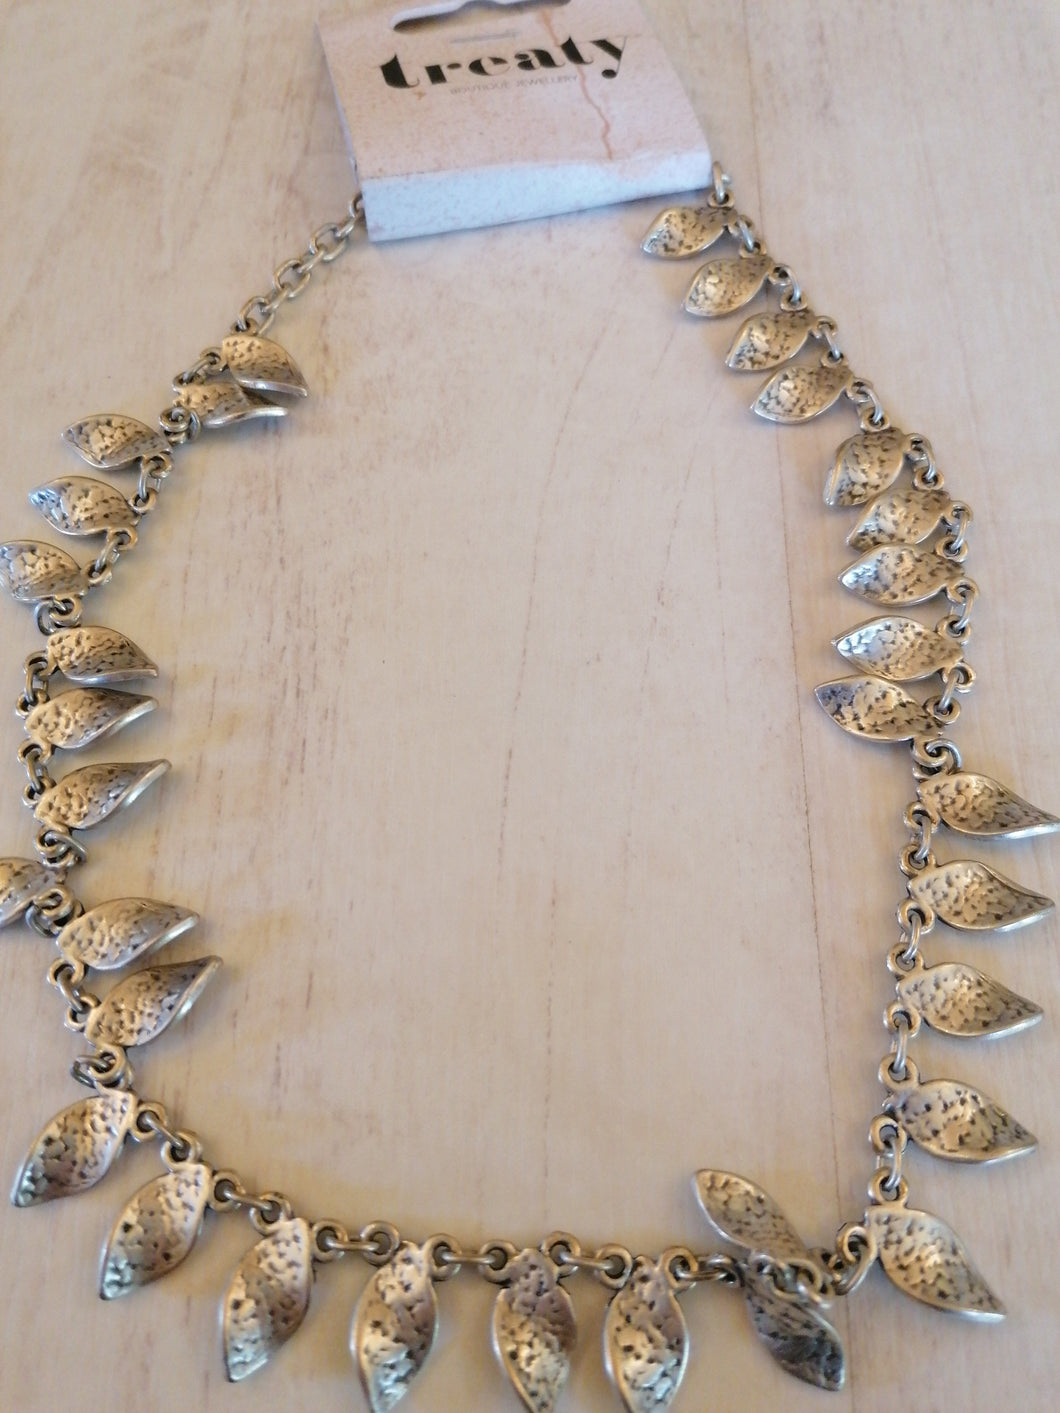 treaty julie necklace £25.99 now £12.49